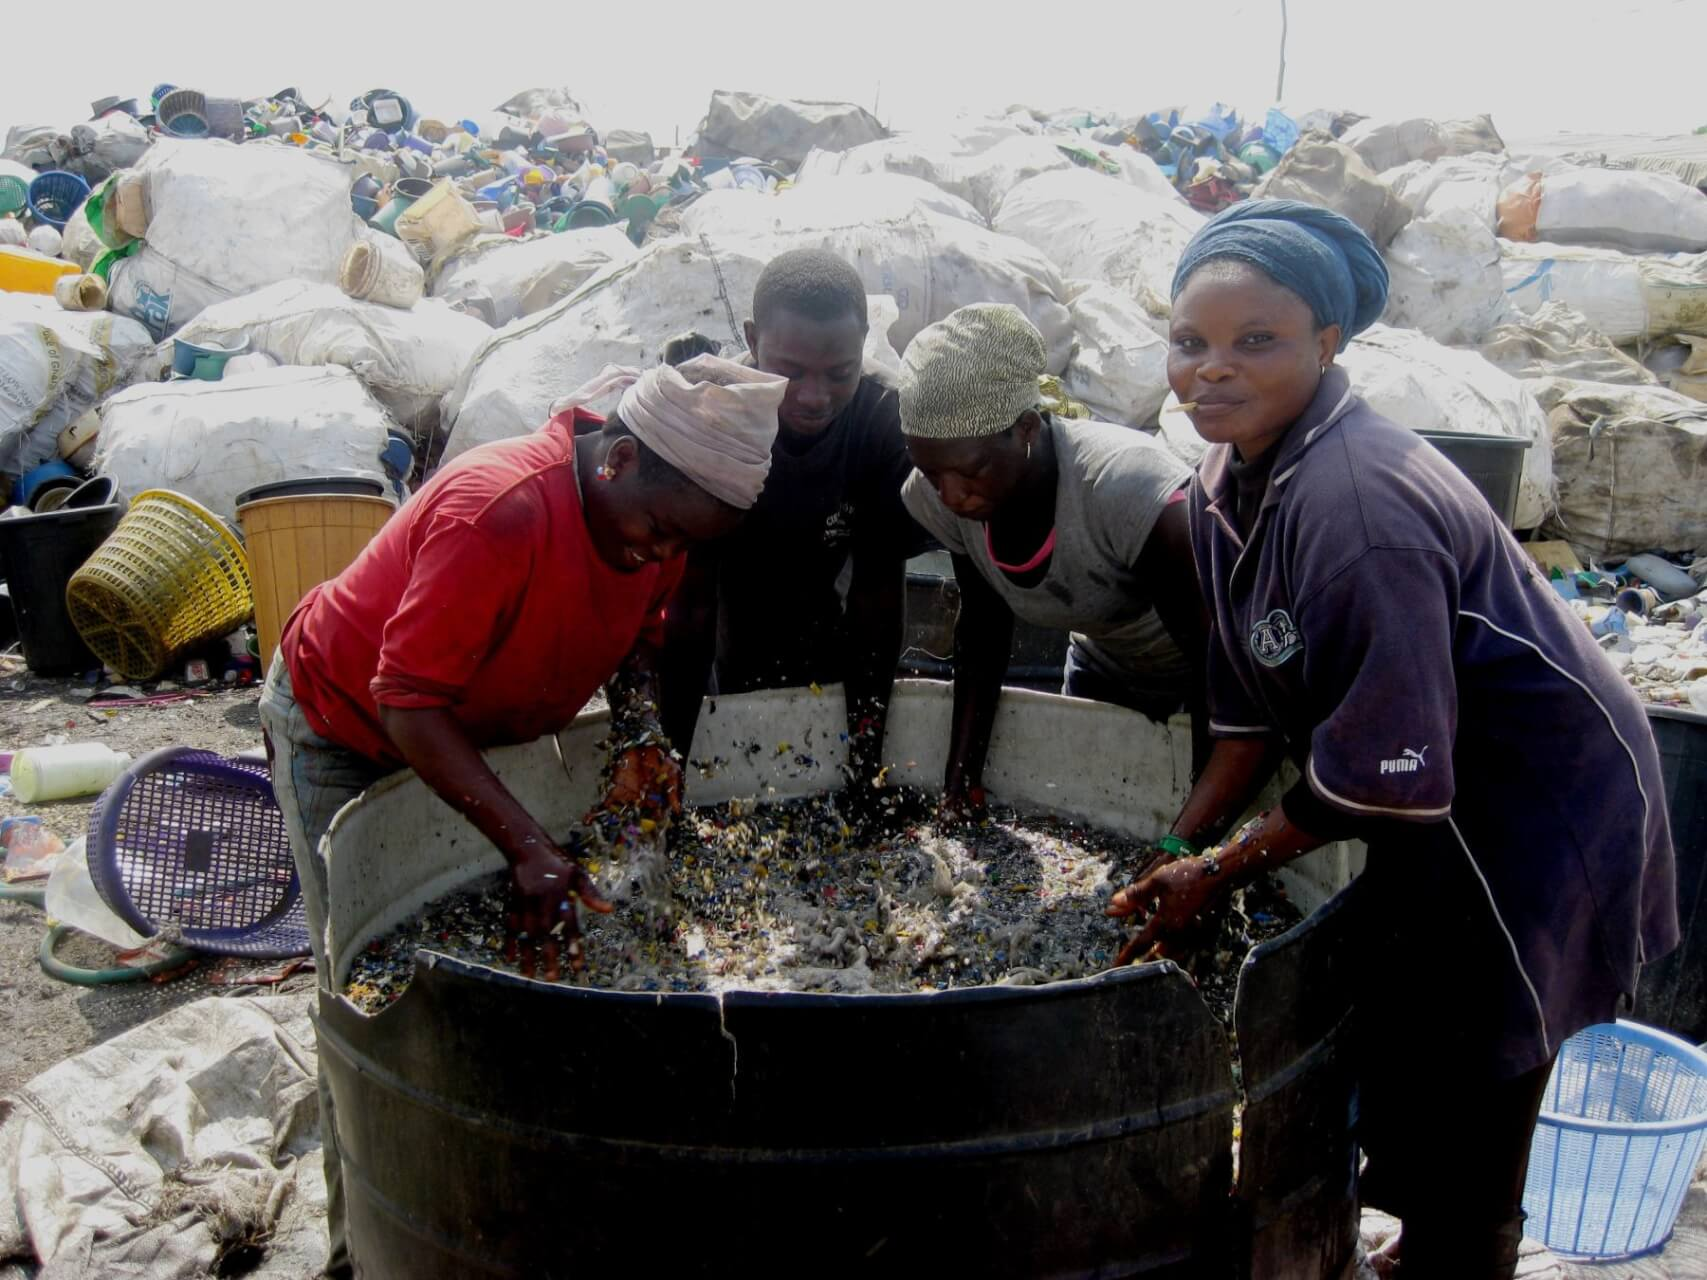 Washing plastic waste flakes, by Sophie van den Berg in Accra, Ghana